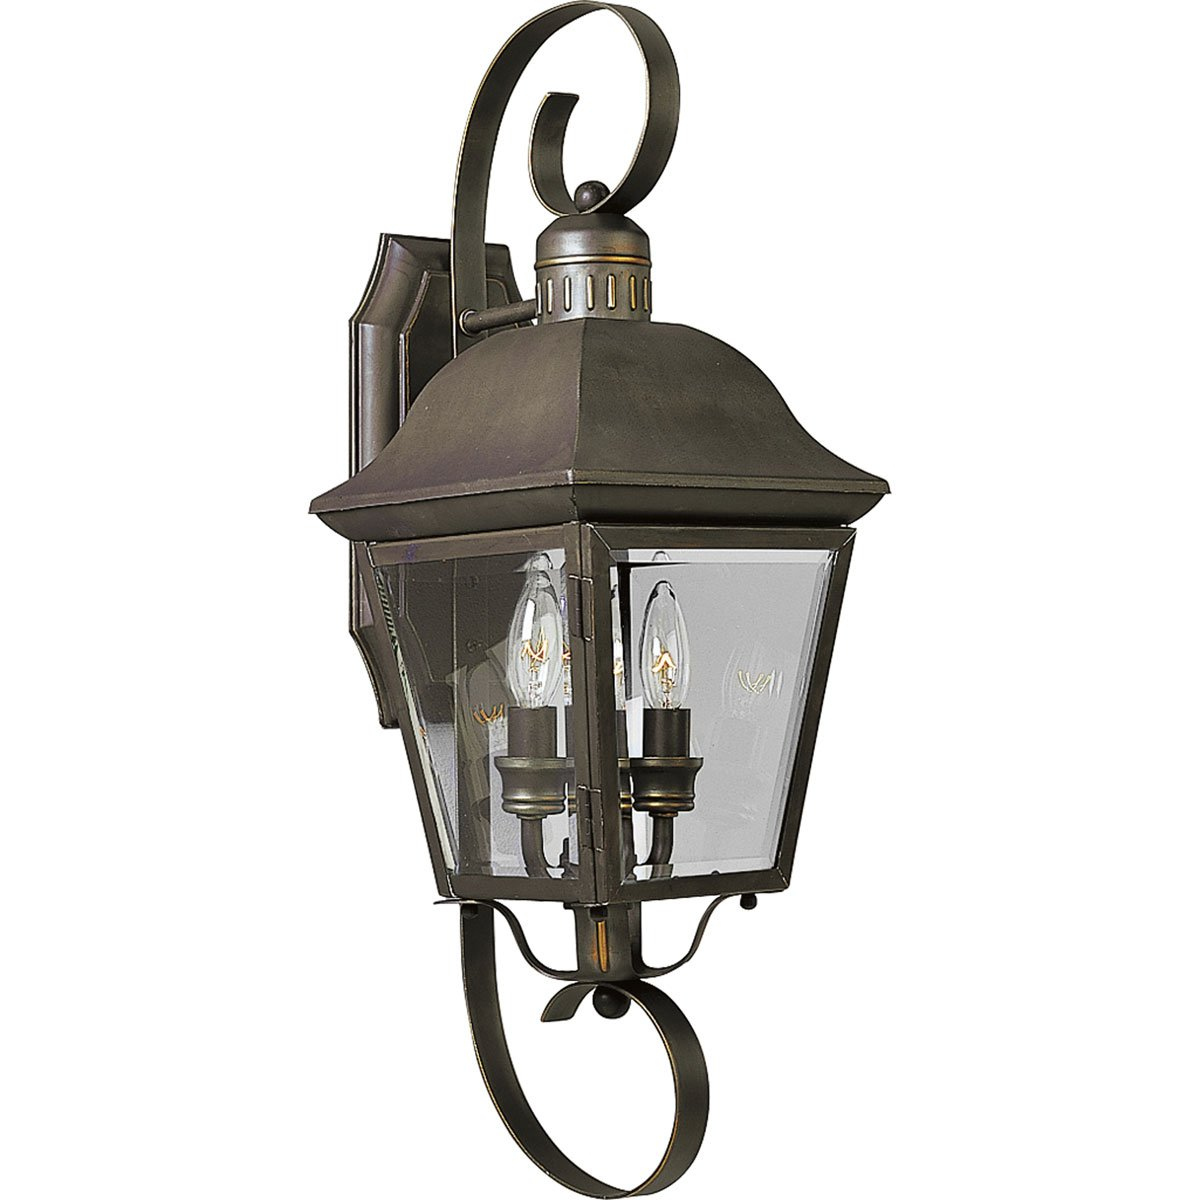 Amazon progress lighting p5688 20 2 light andover medium wall amazon progress lighting p5688 20 2 light andover medium wall lantern with solid brass construction antique bronze outdoor post lights garden mozeypictures